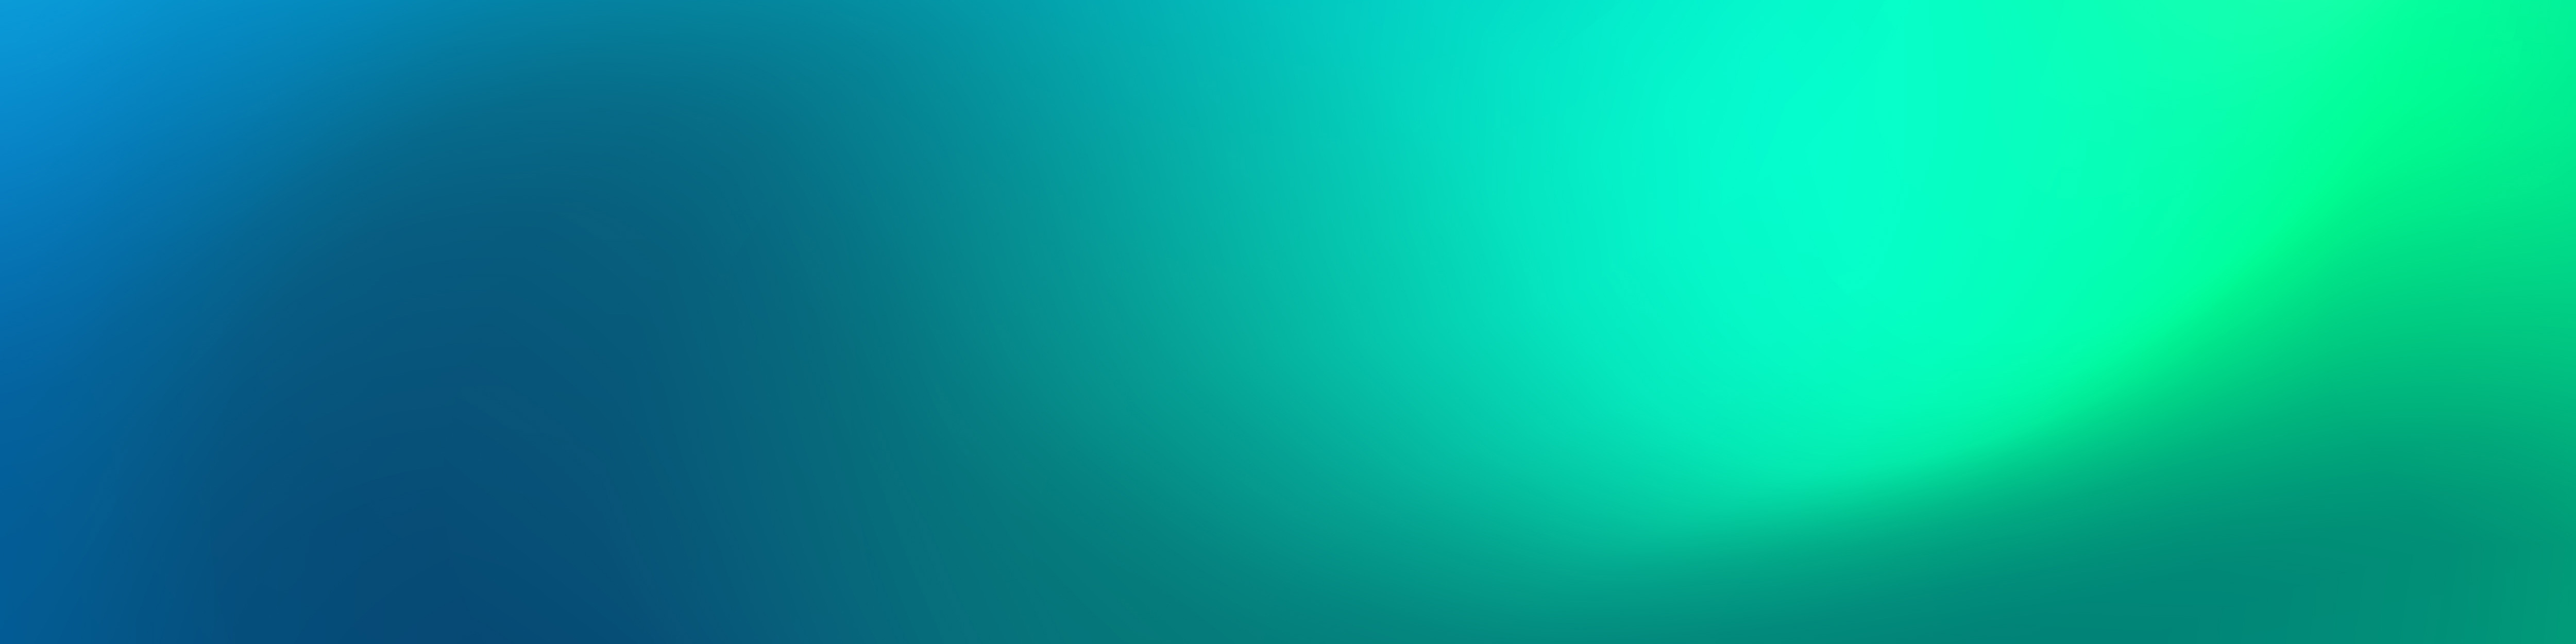 blue green violet background for covid-19 accounting